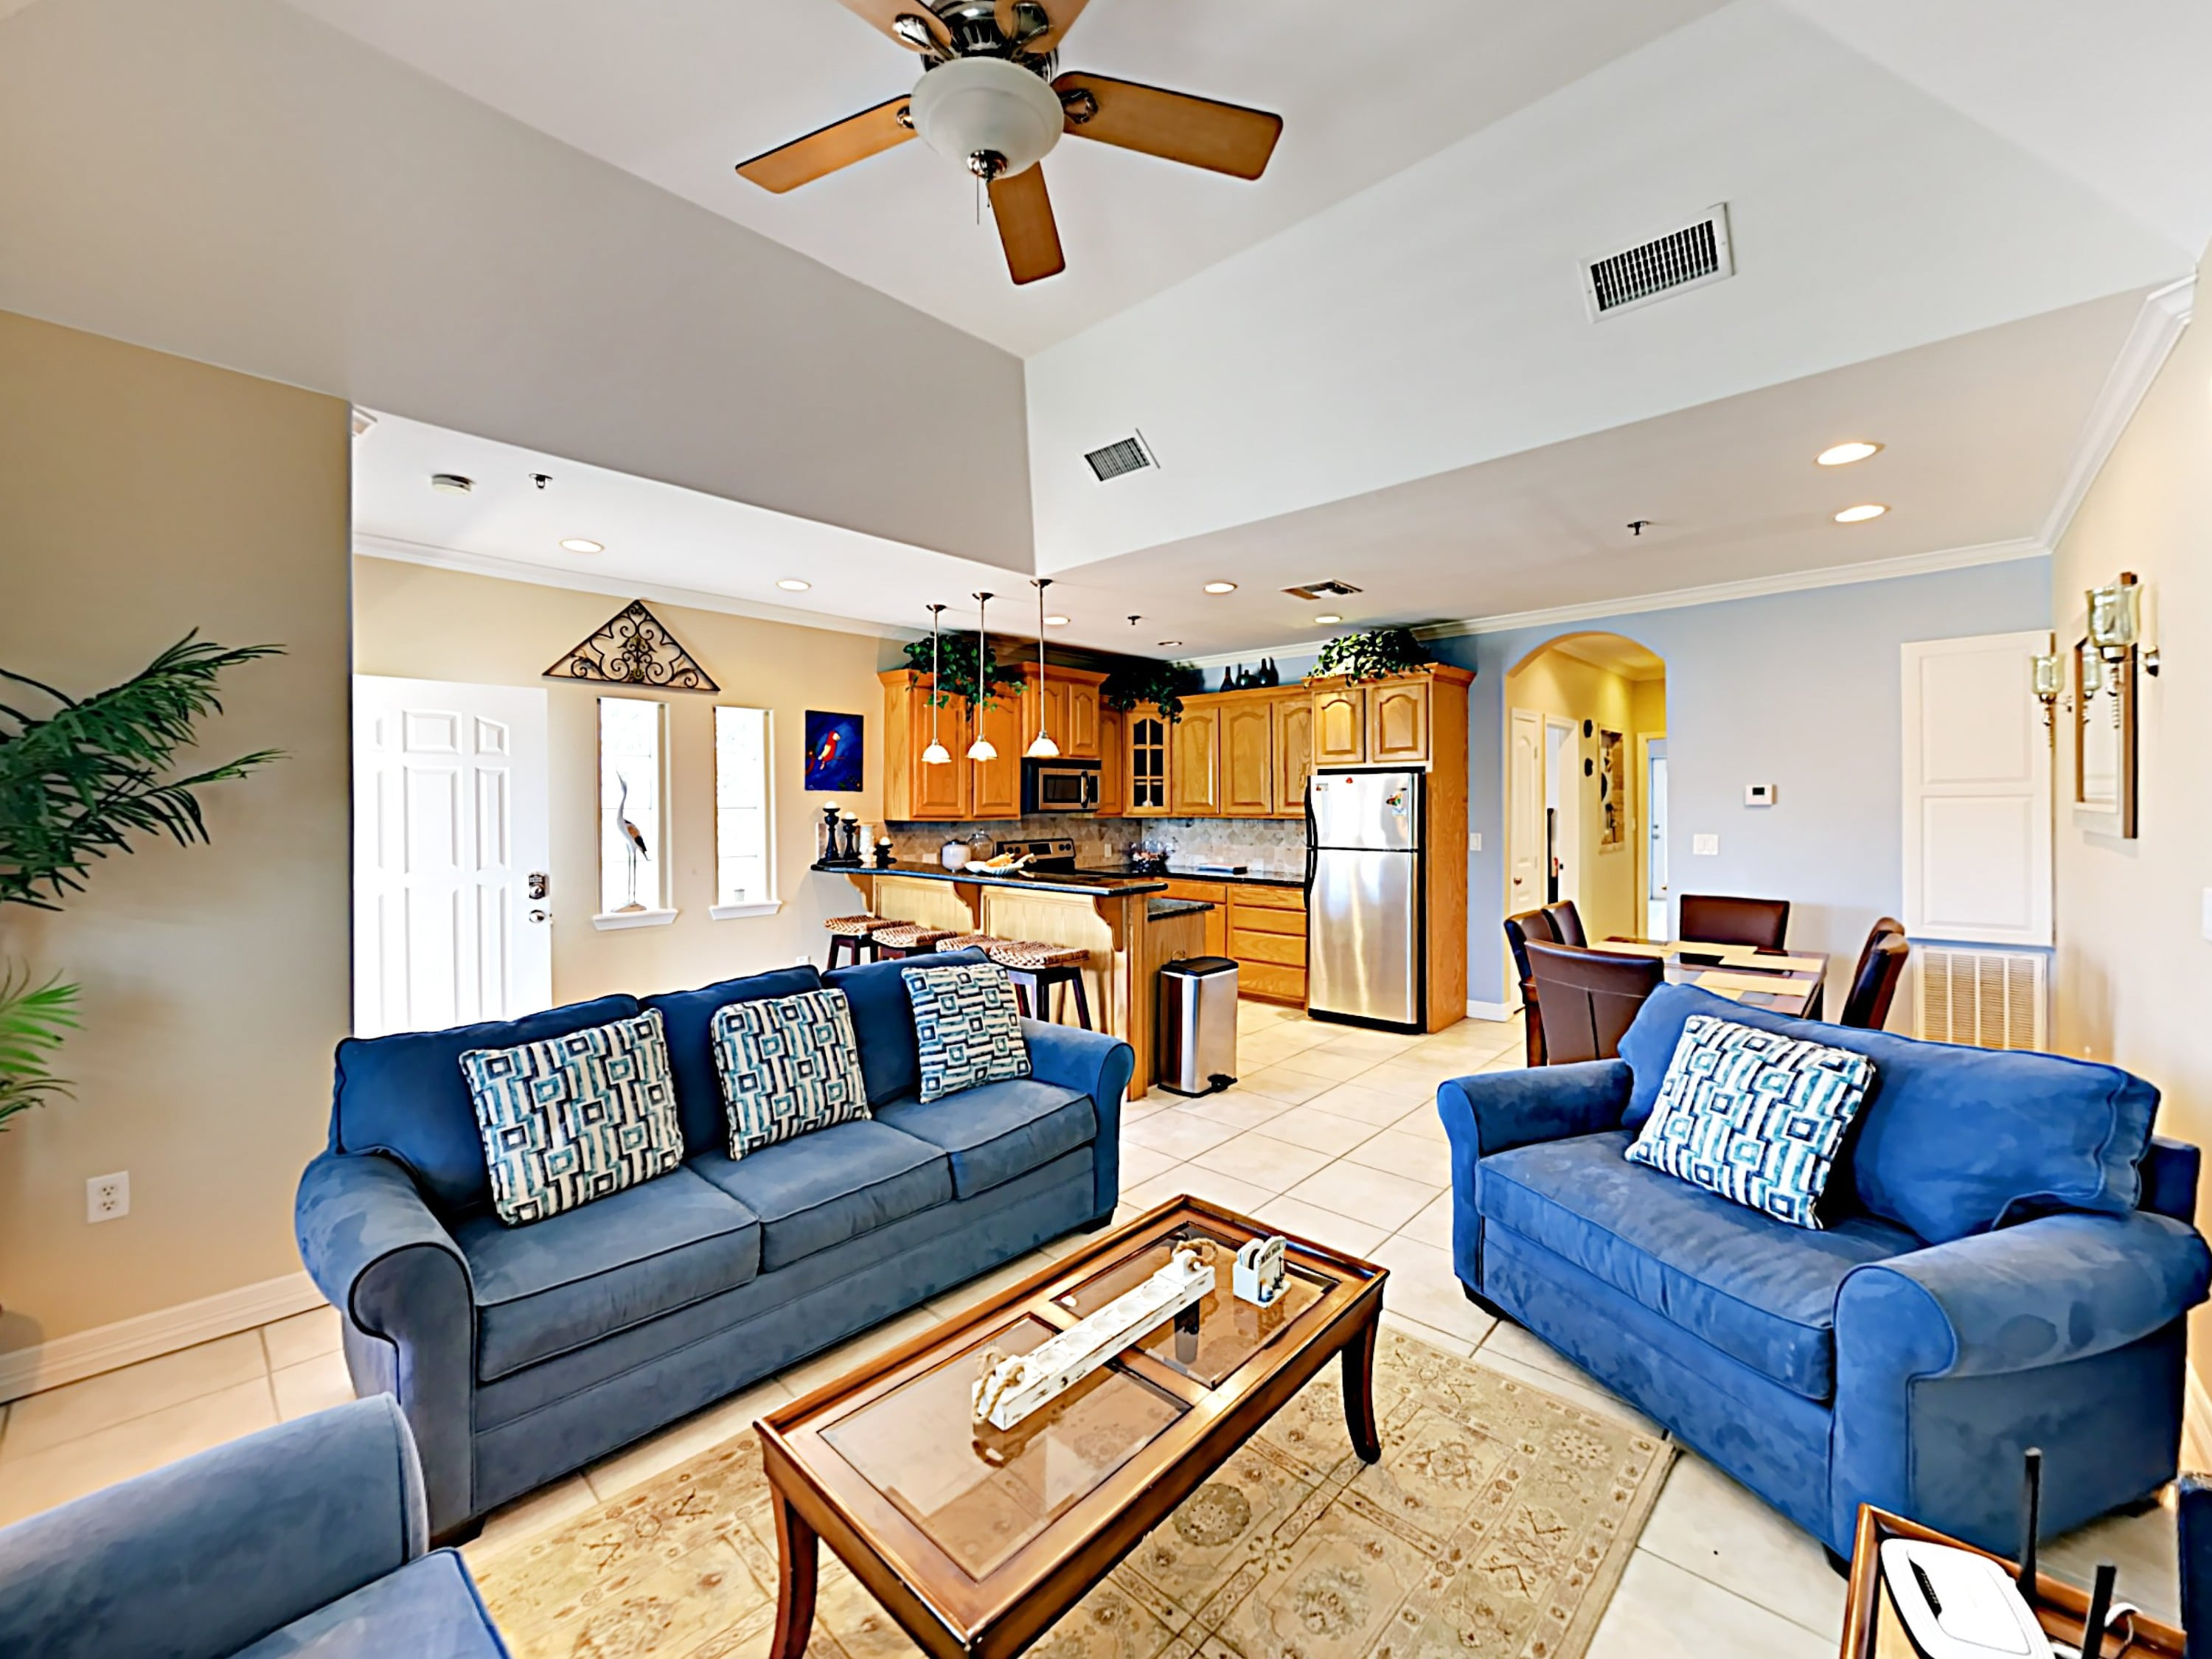 A welcoming open-concept living space is sure to be a prime hang-out location for you and your guests.